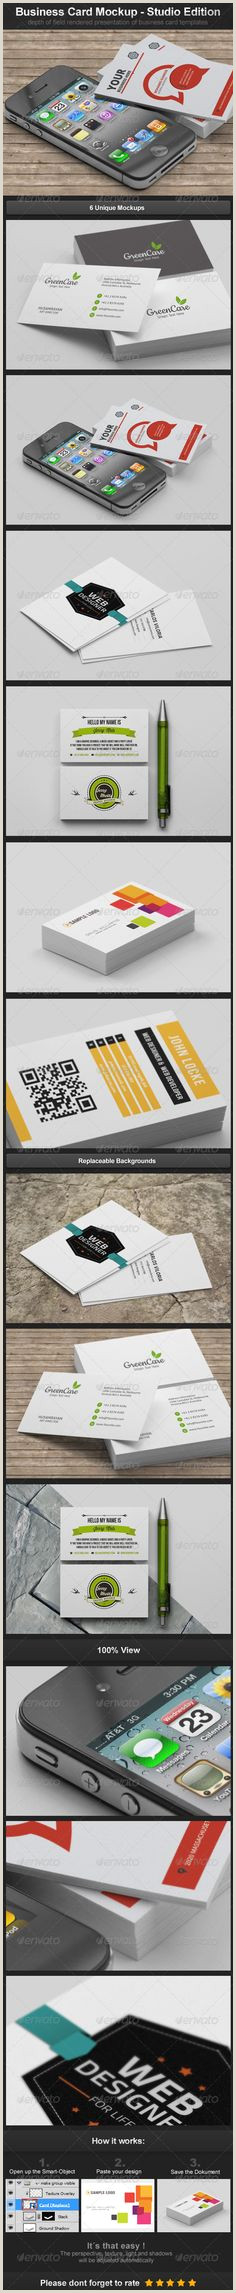 Best Business Cards Credit Employee 20 Business Card Mockups Ideas